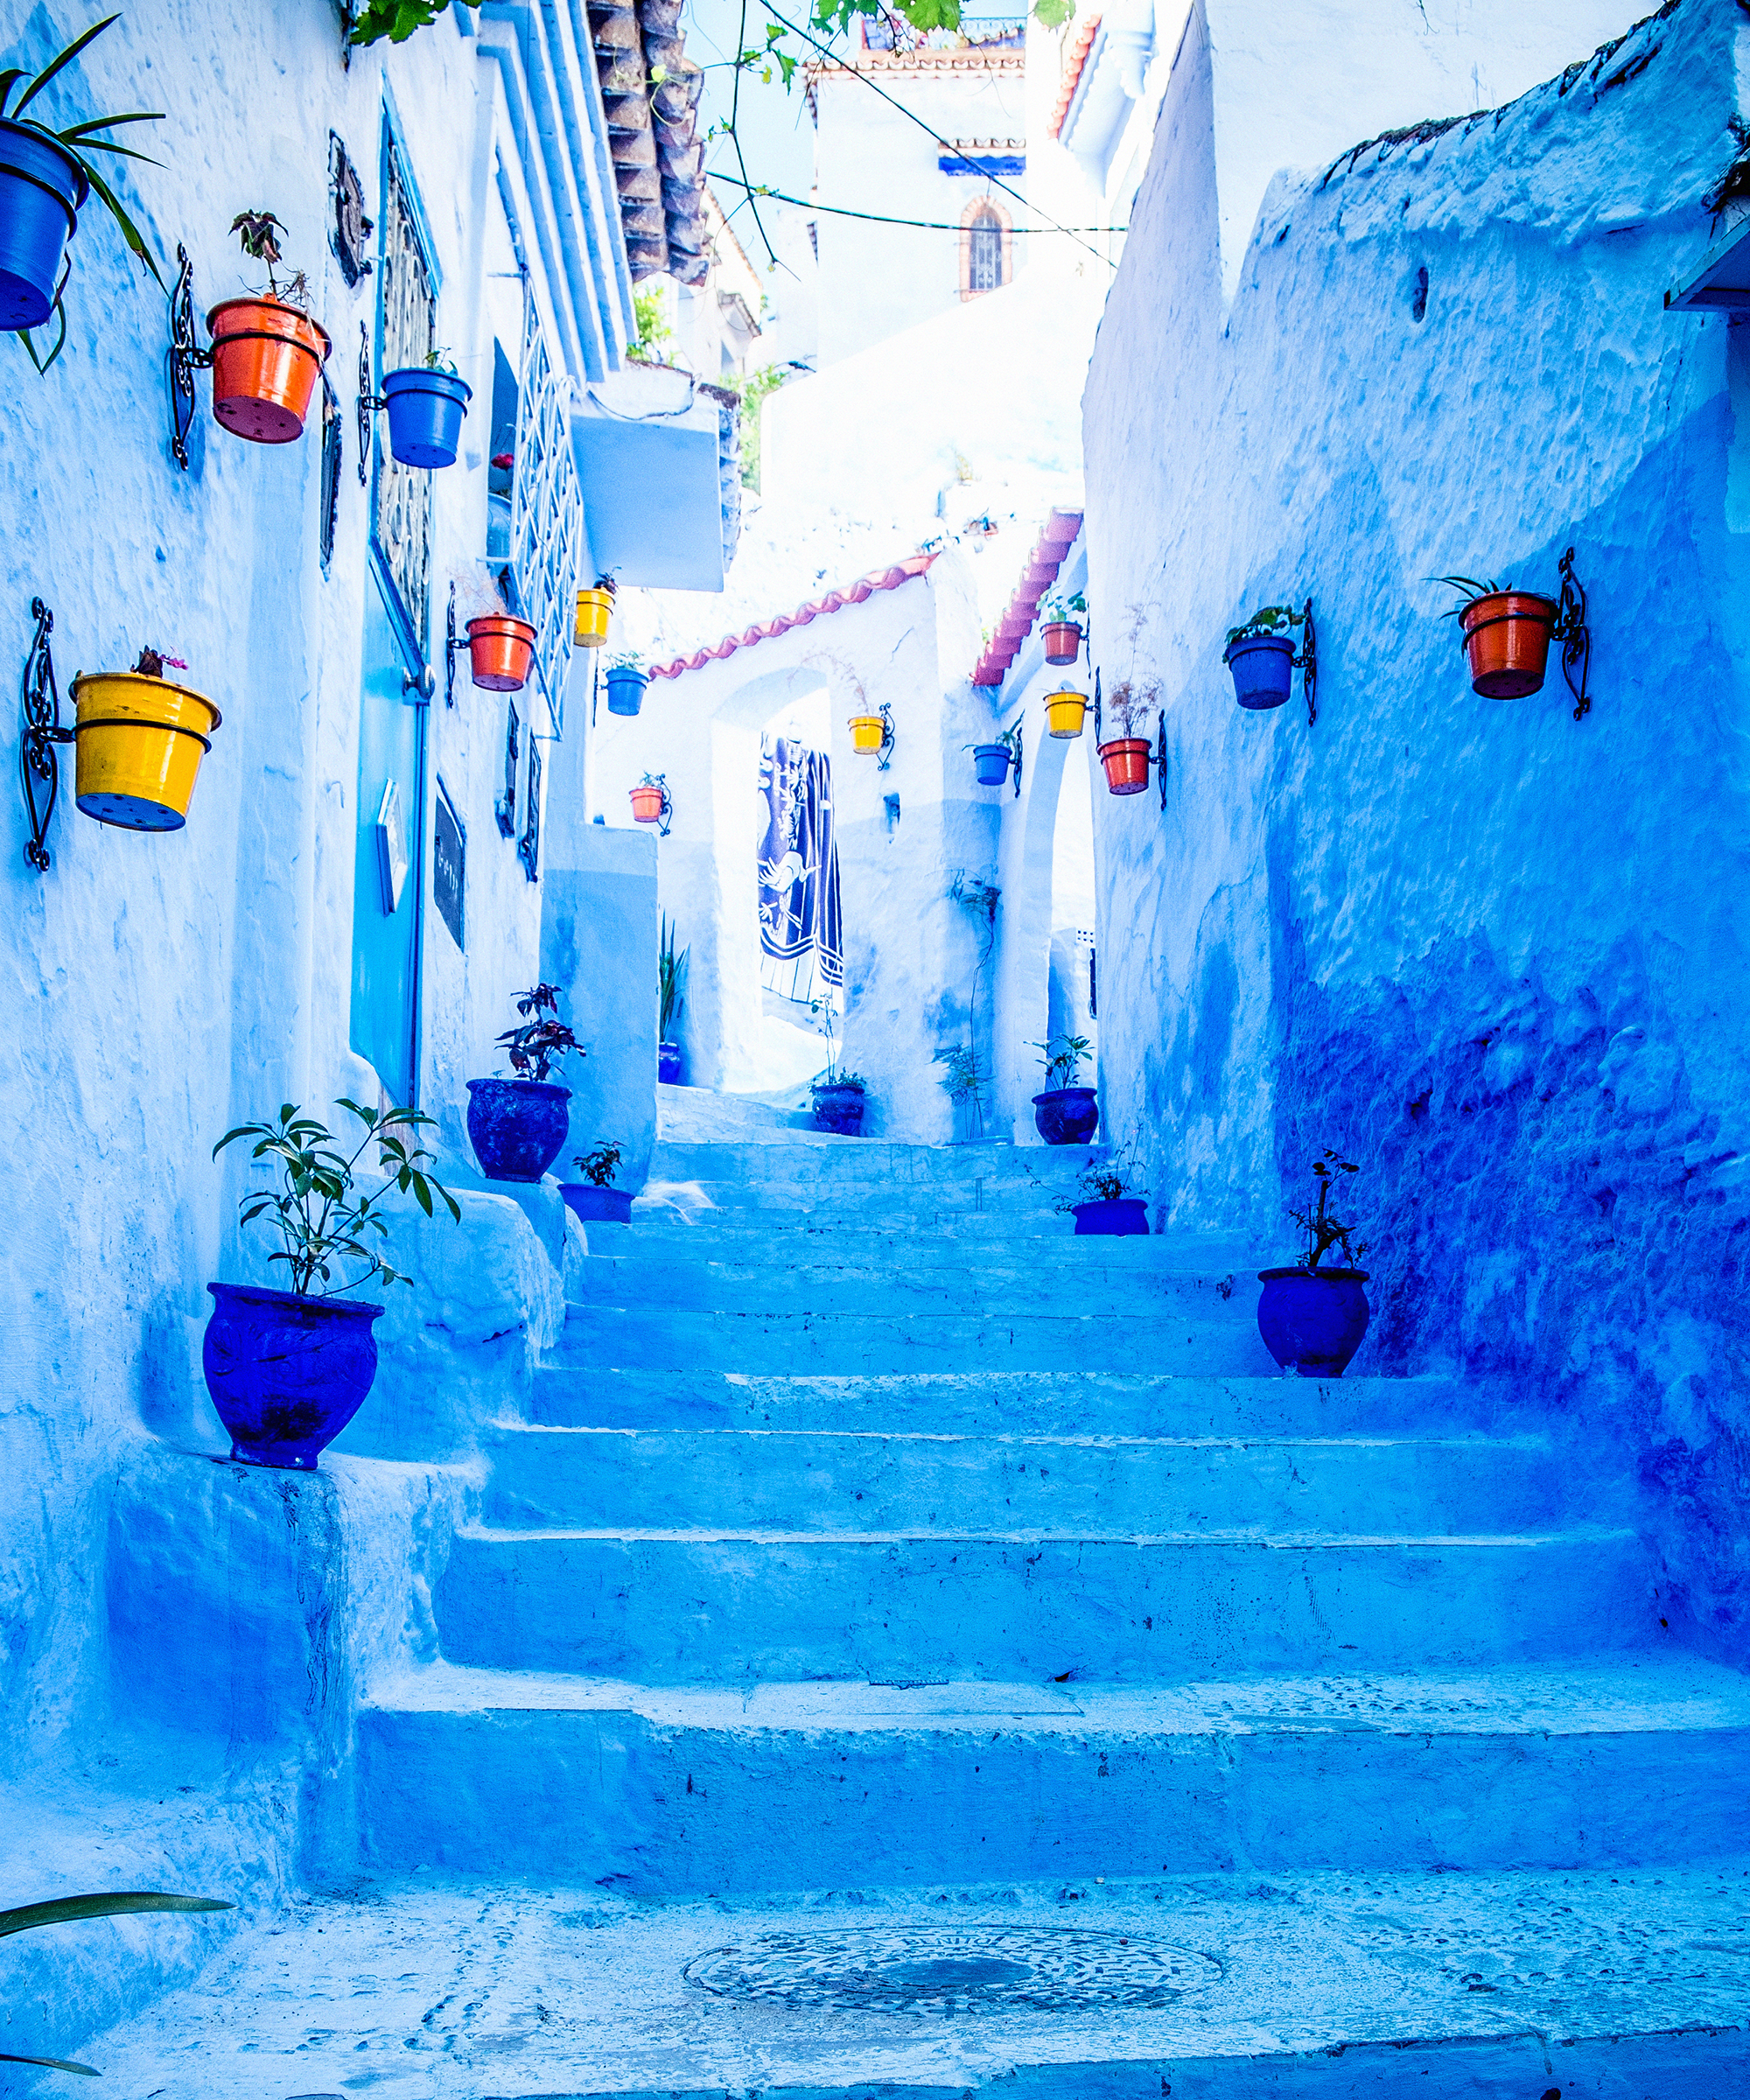 Vacation Cost Chefchaouen Morocco Blue City Trip Price - Old town morocco entirely blue